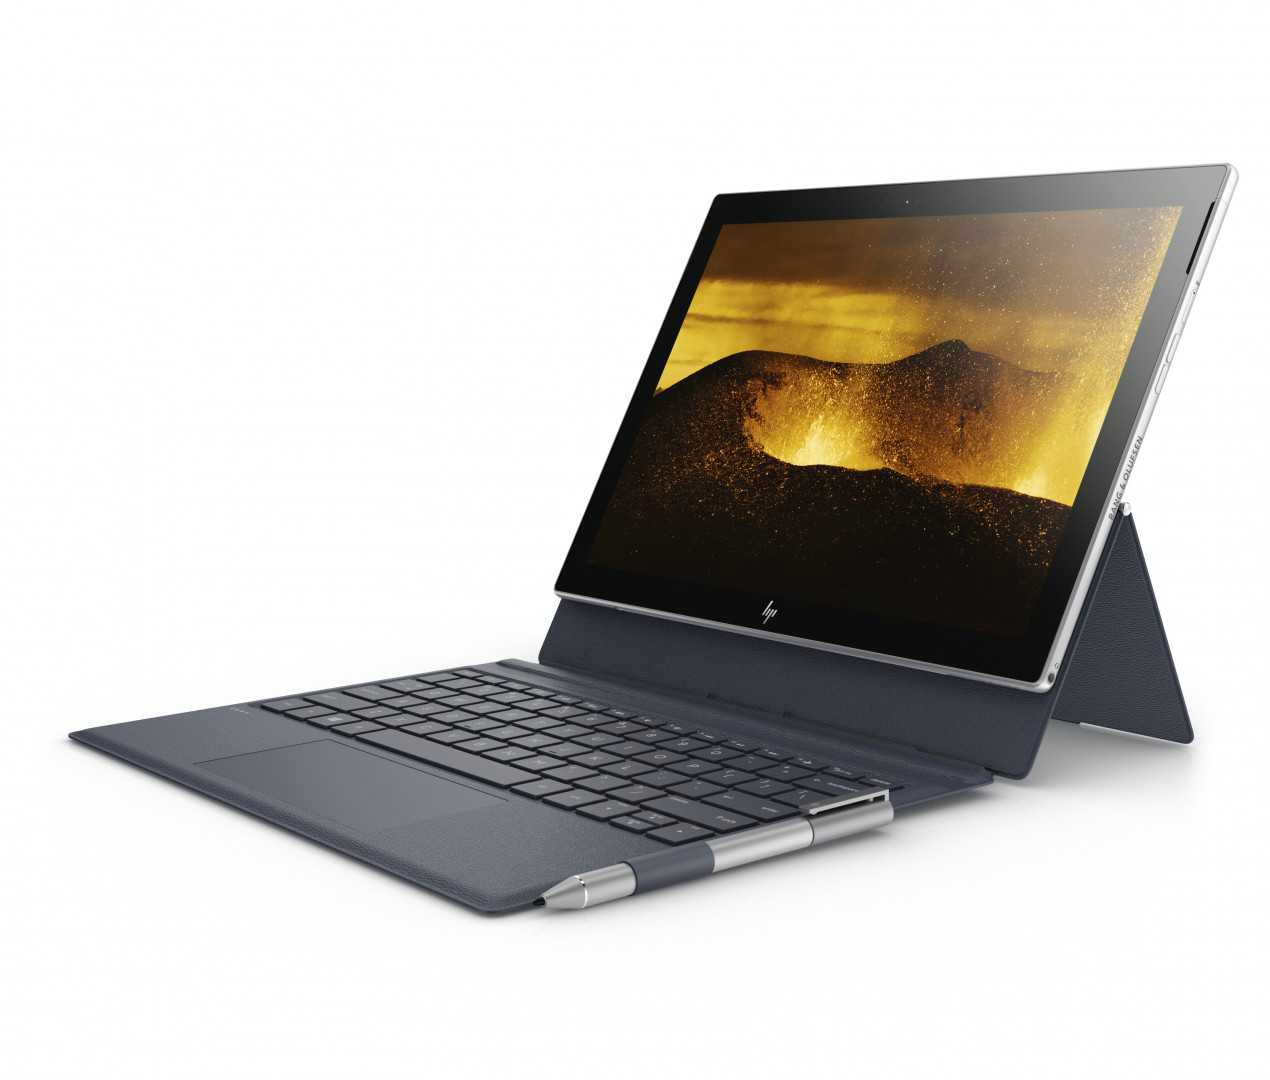 HP Envy X2 specifications